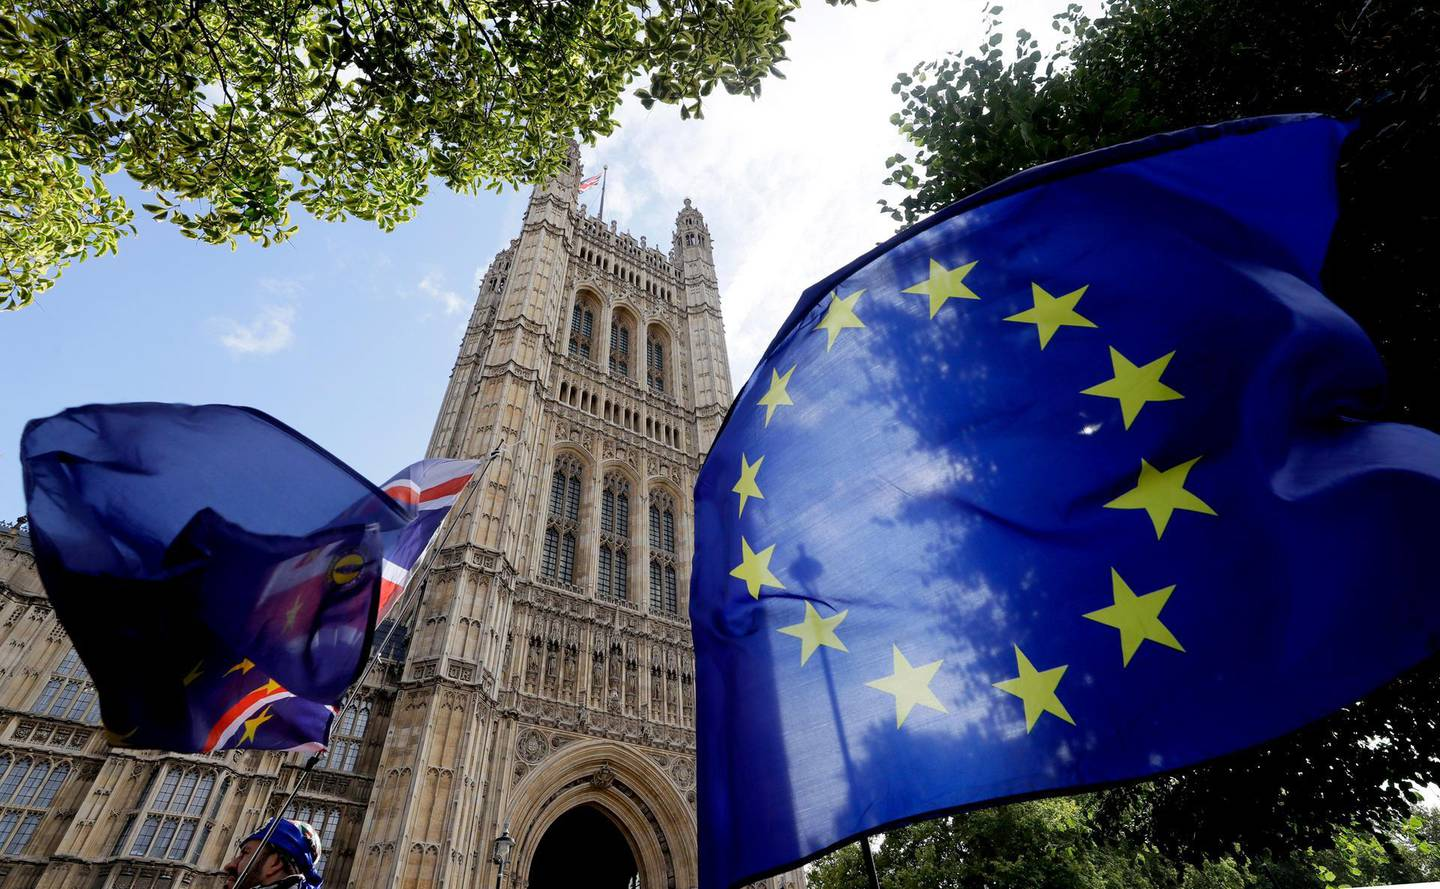 """A European Union flag flies near Britain's Parliament in London, Thursday, Sept. 26, 2019. An unrepentant Prime Minister Boris Johnson brushed off cries of """"Resign!"""" and dared his foes to try to topple him Wednesday at a raucous session of Parliament, a day after Britain's highest court ruled he acted illegally in suspending the body ahead of the Brexit deadline. (AP Photo/Kirsty Wigglesworth)"""